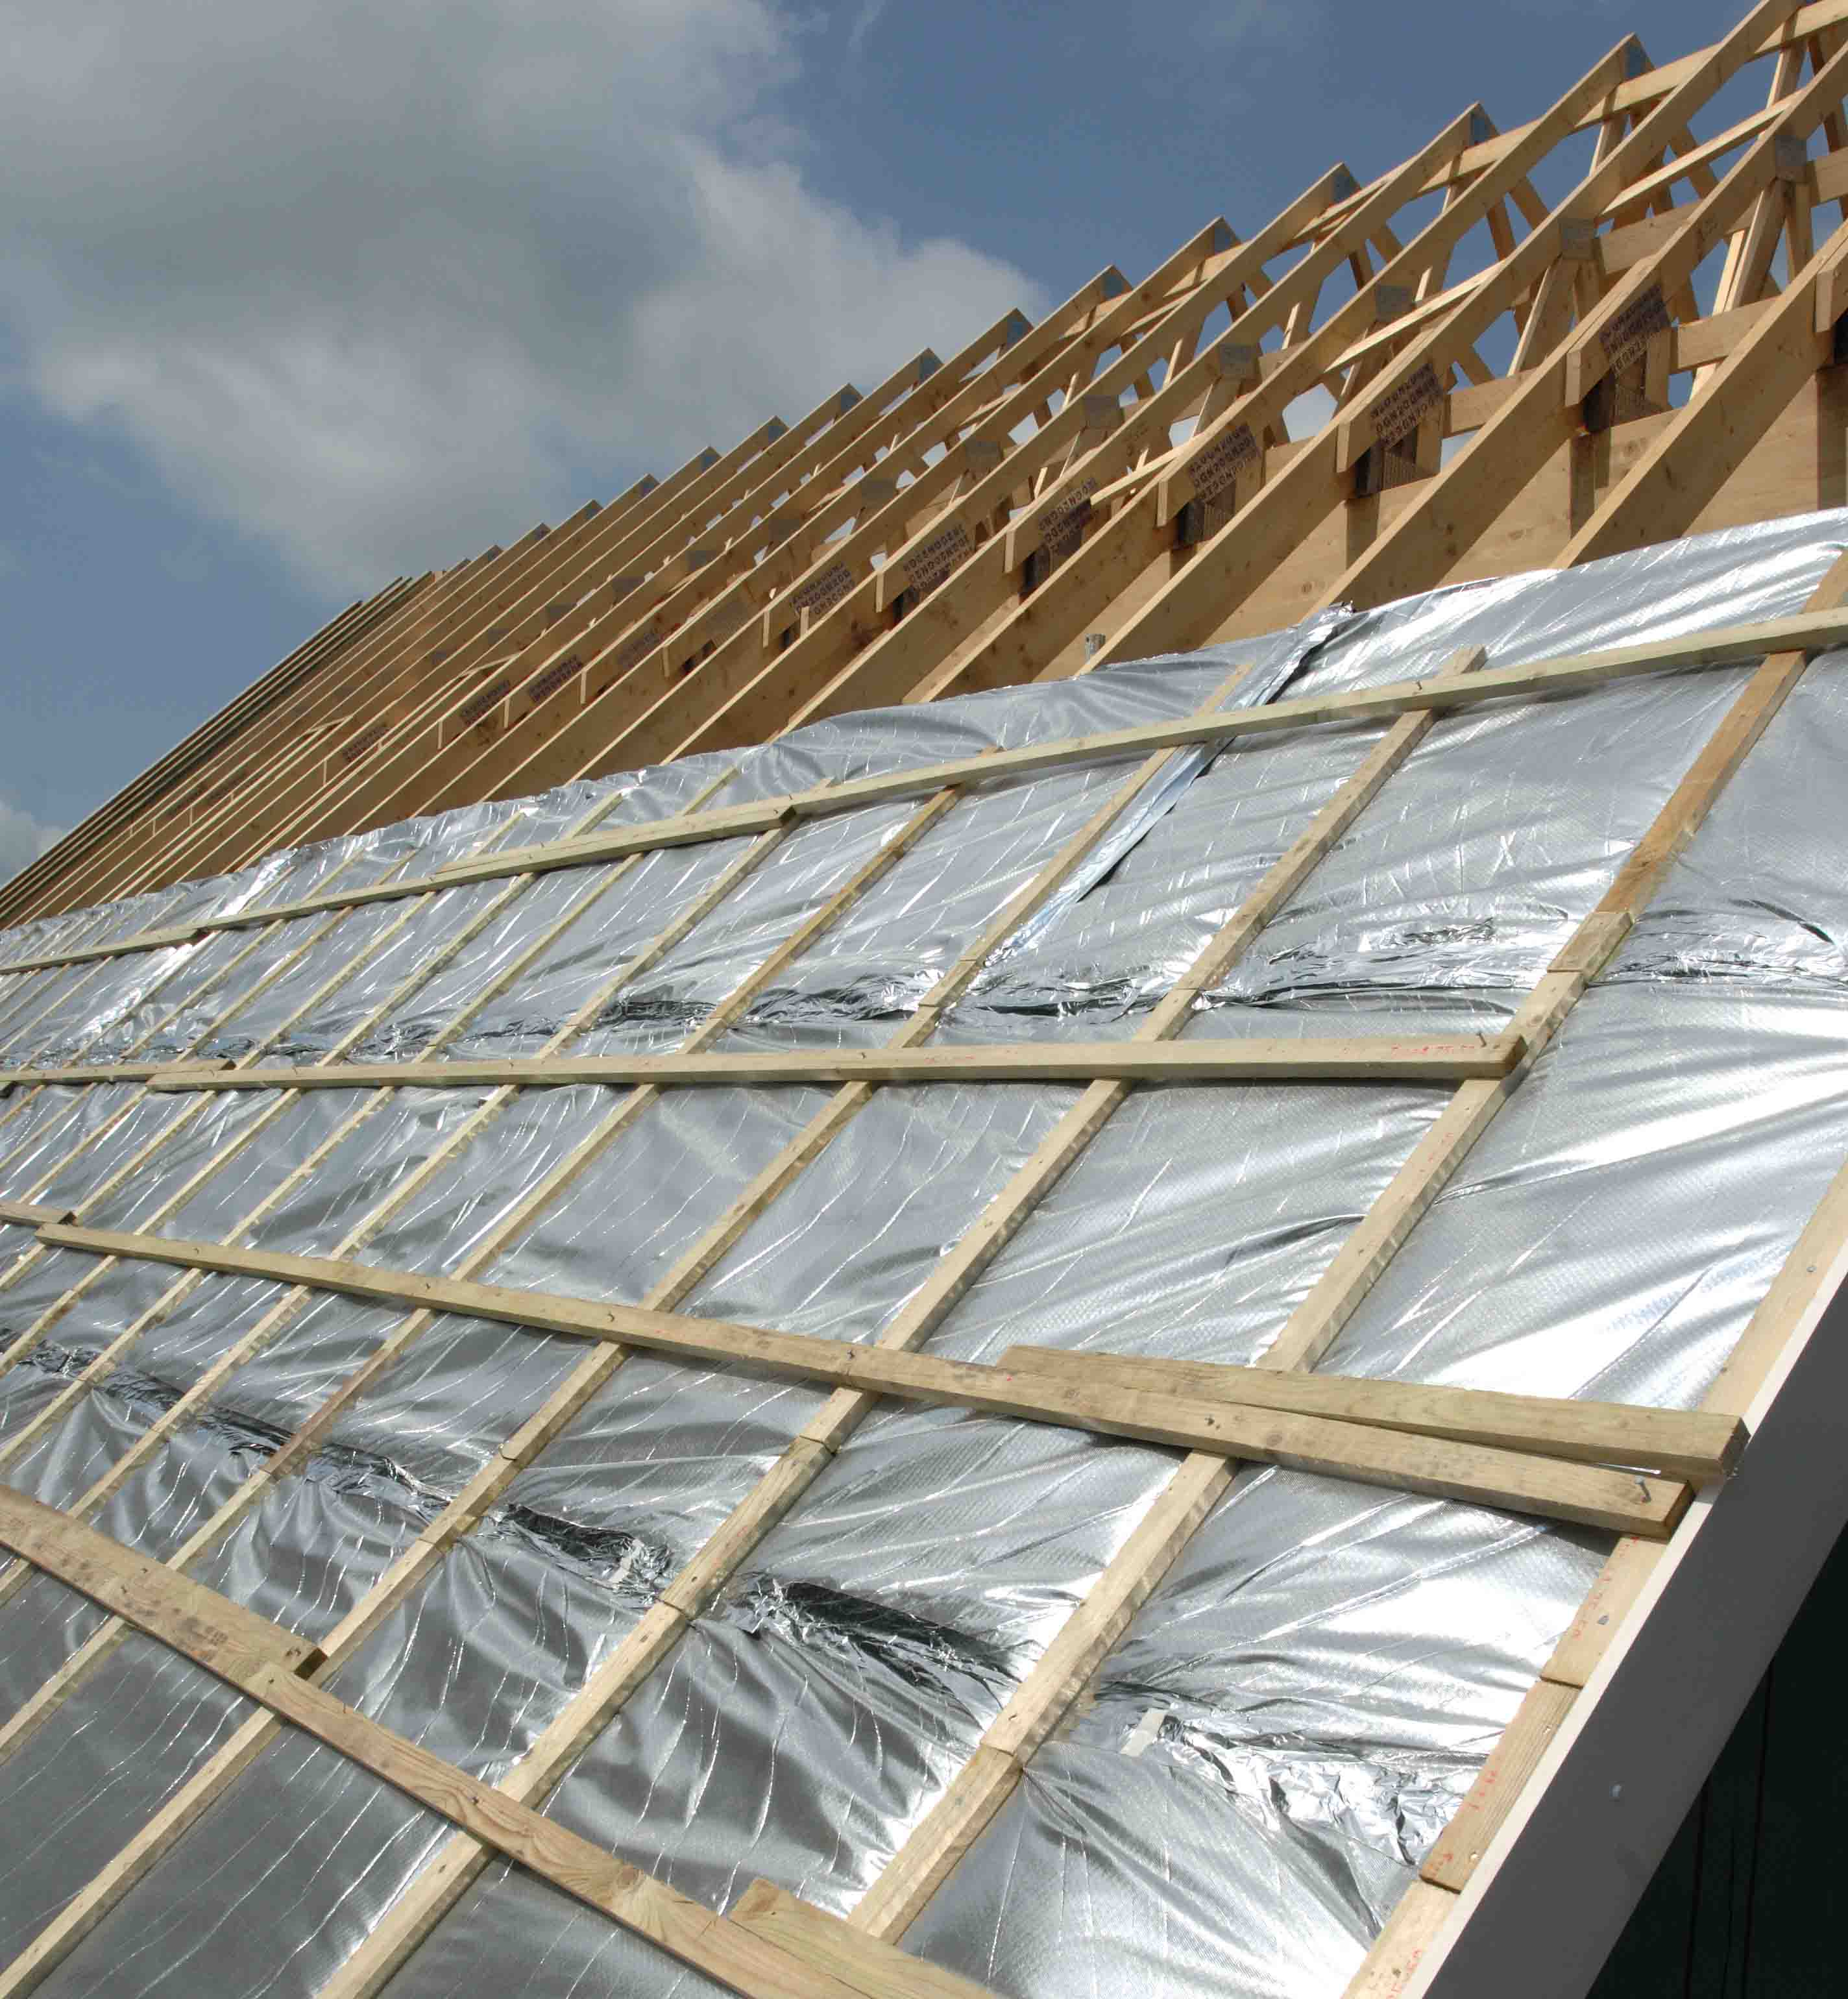 Insulation Above Roof : Tlx thinsulex multi foil roof insulation suppliers we